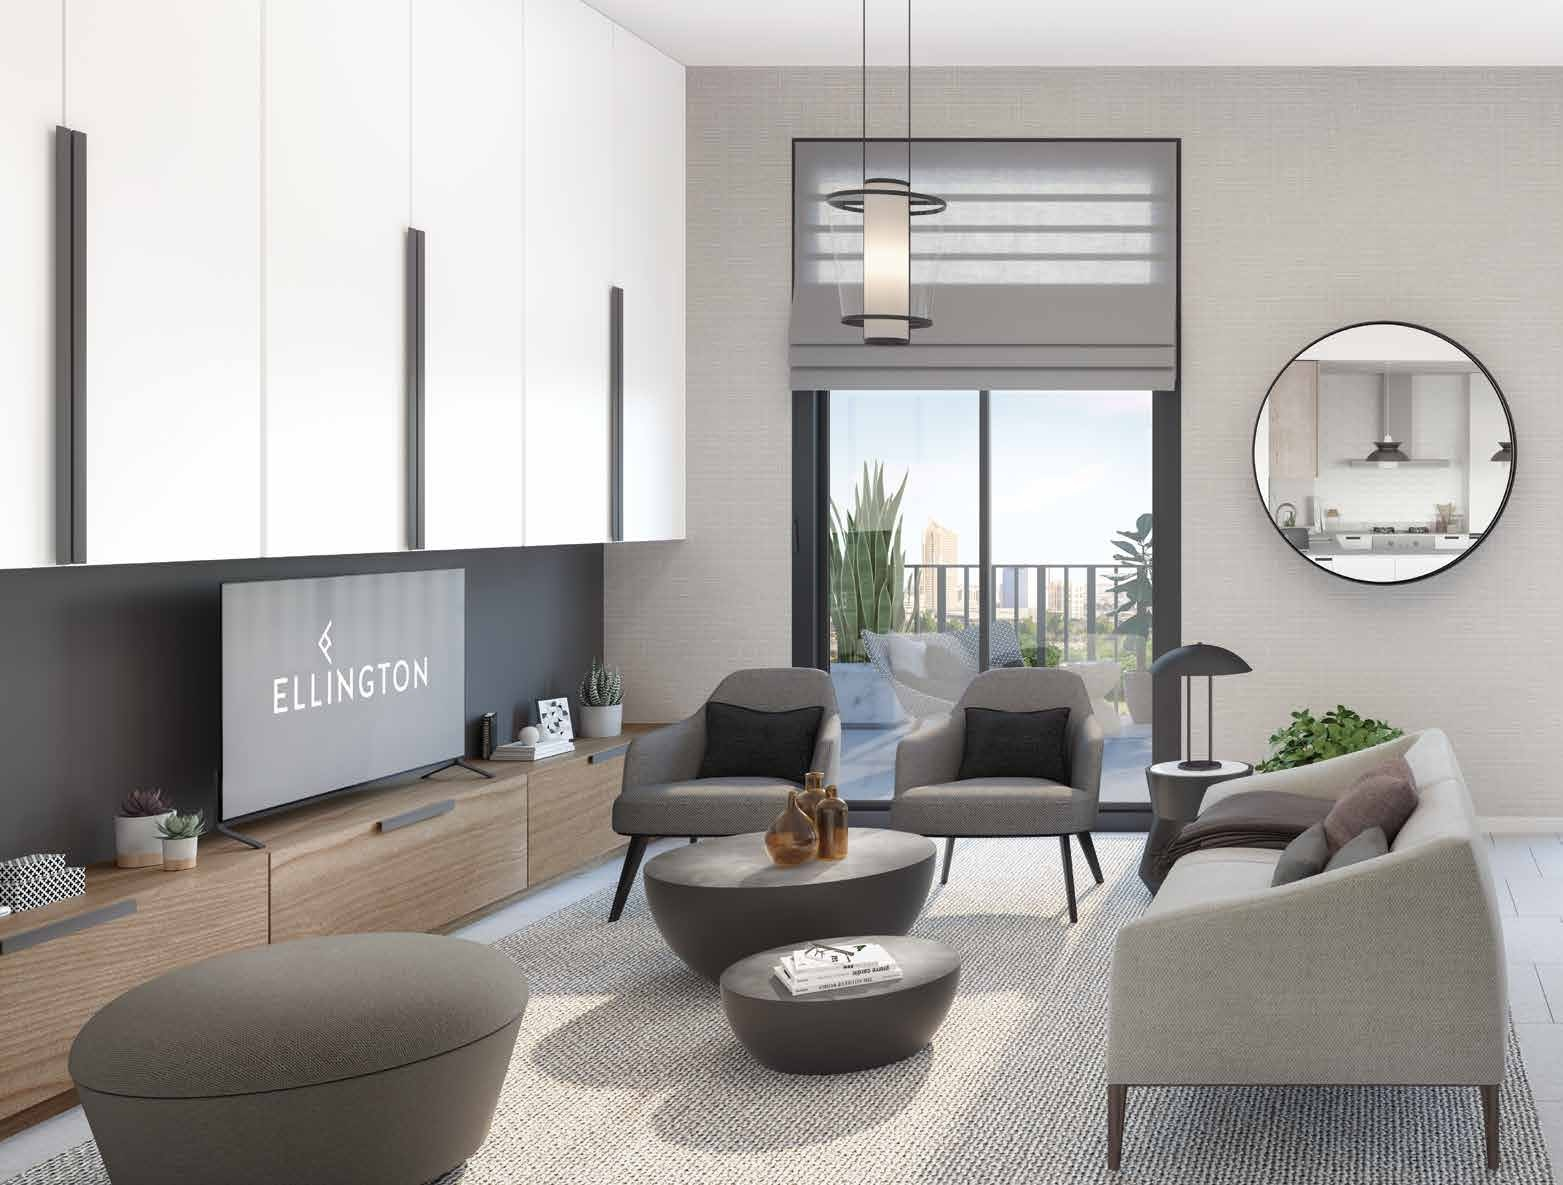 CREATING SPACES FOR MODERN LIFESTYLES